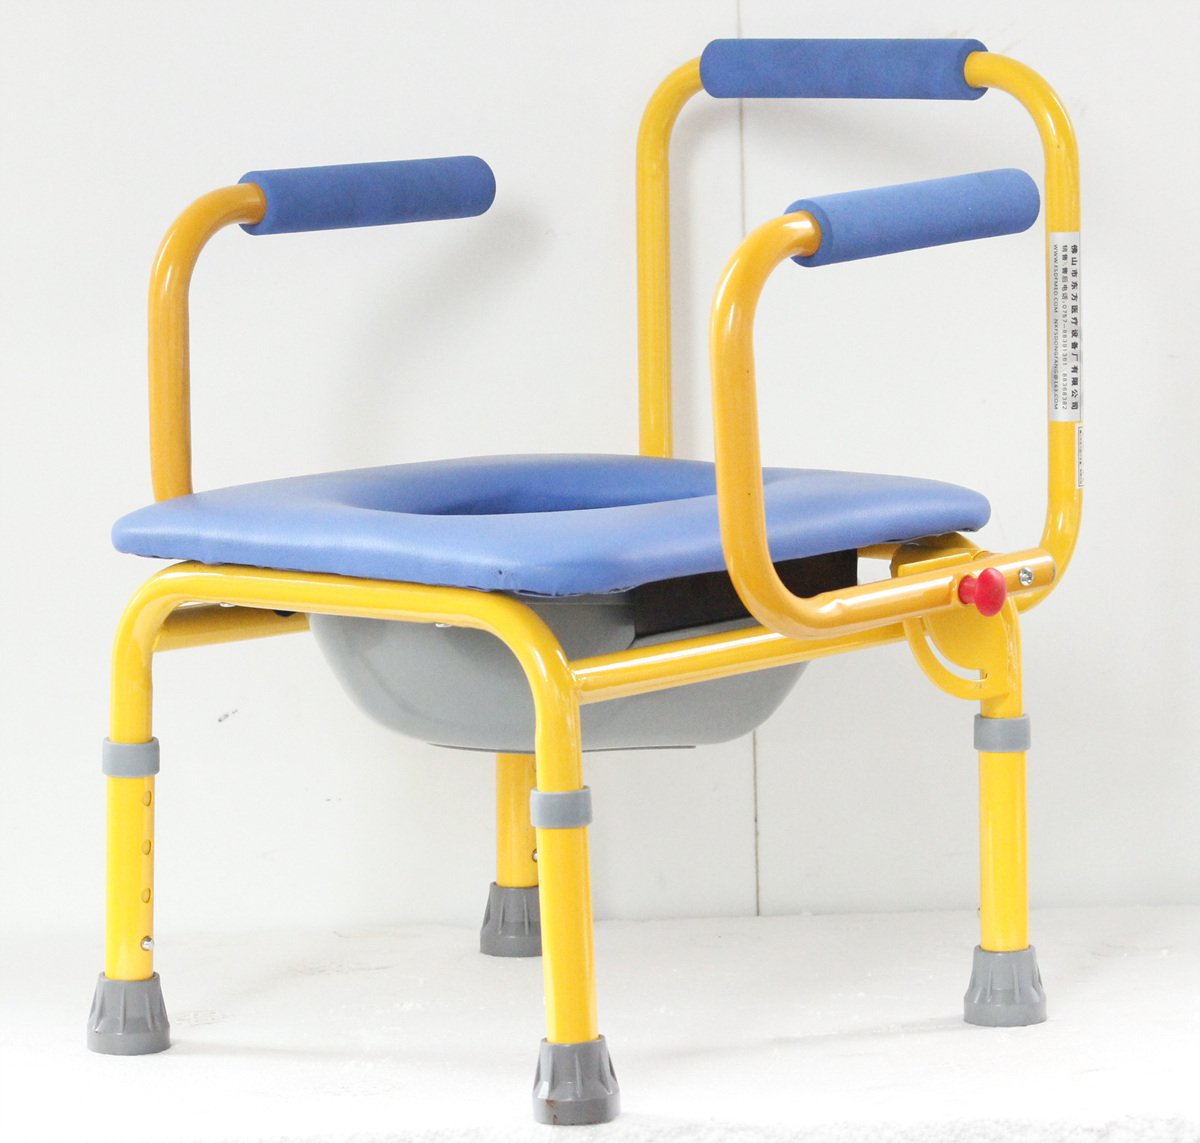 jiaminmin Elderly COMMODE chairs the disabled toilets toilet seat chairs for domestic use in pregnant women and children move the toilet chairs xinxin.com